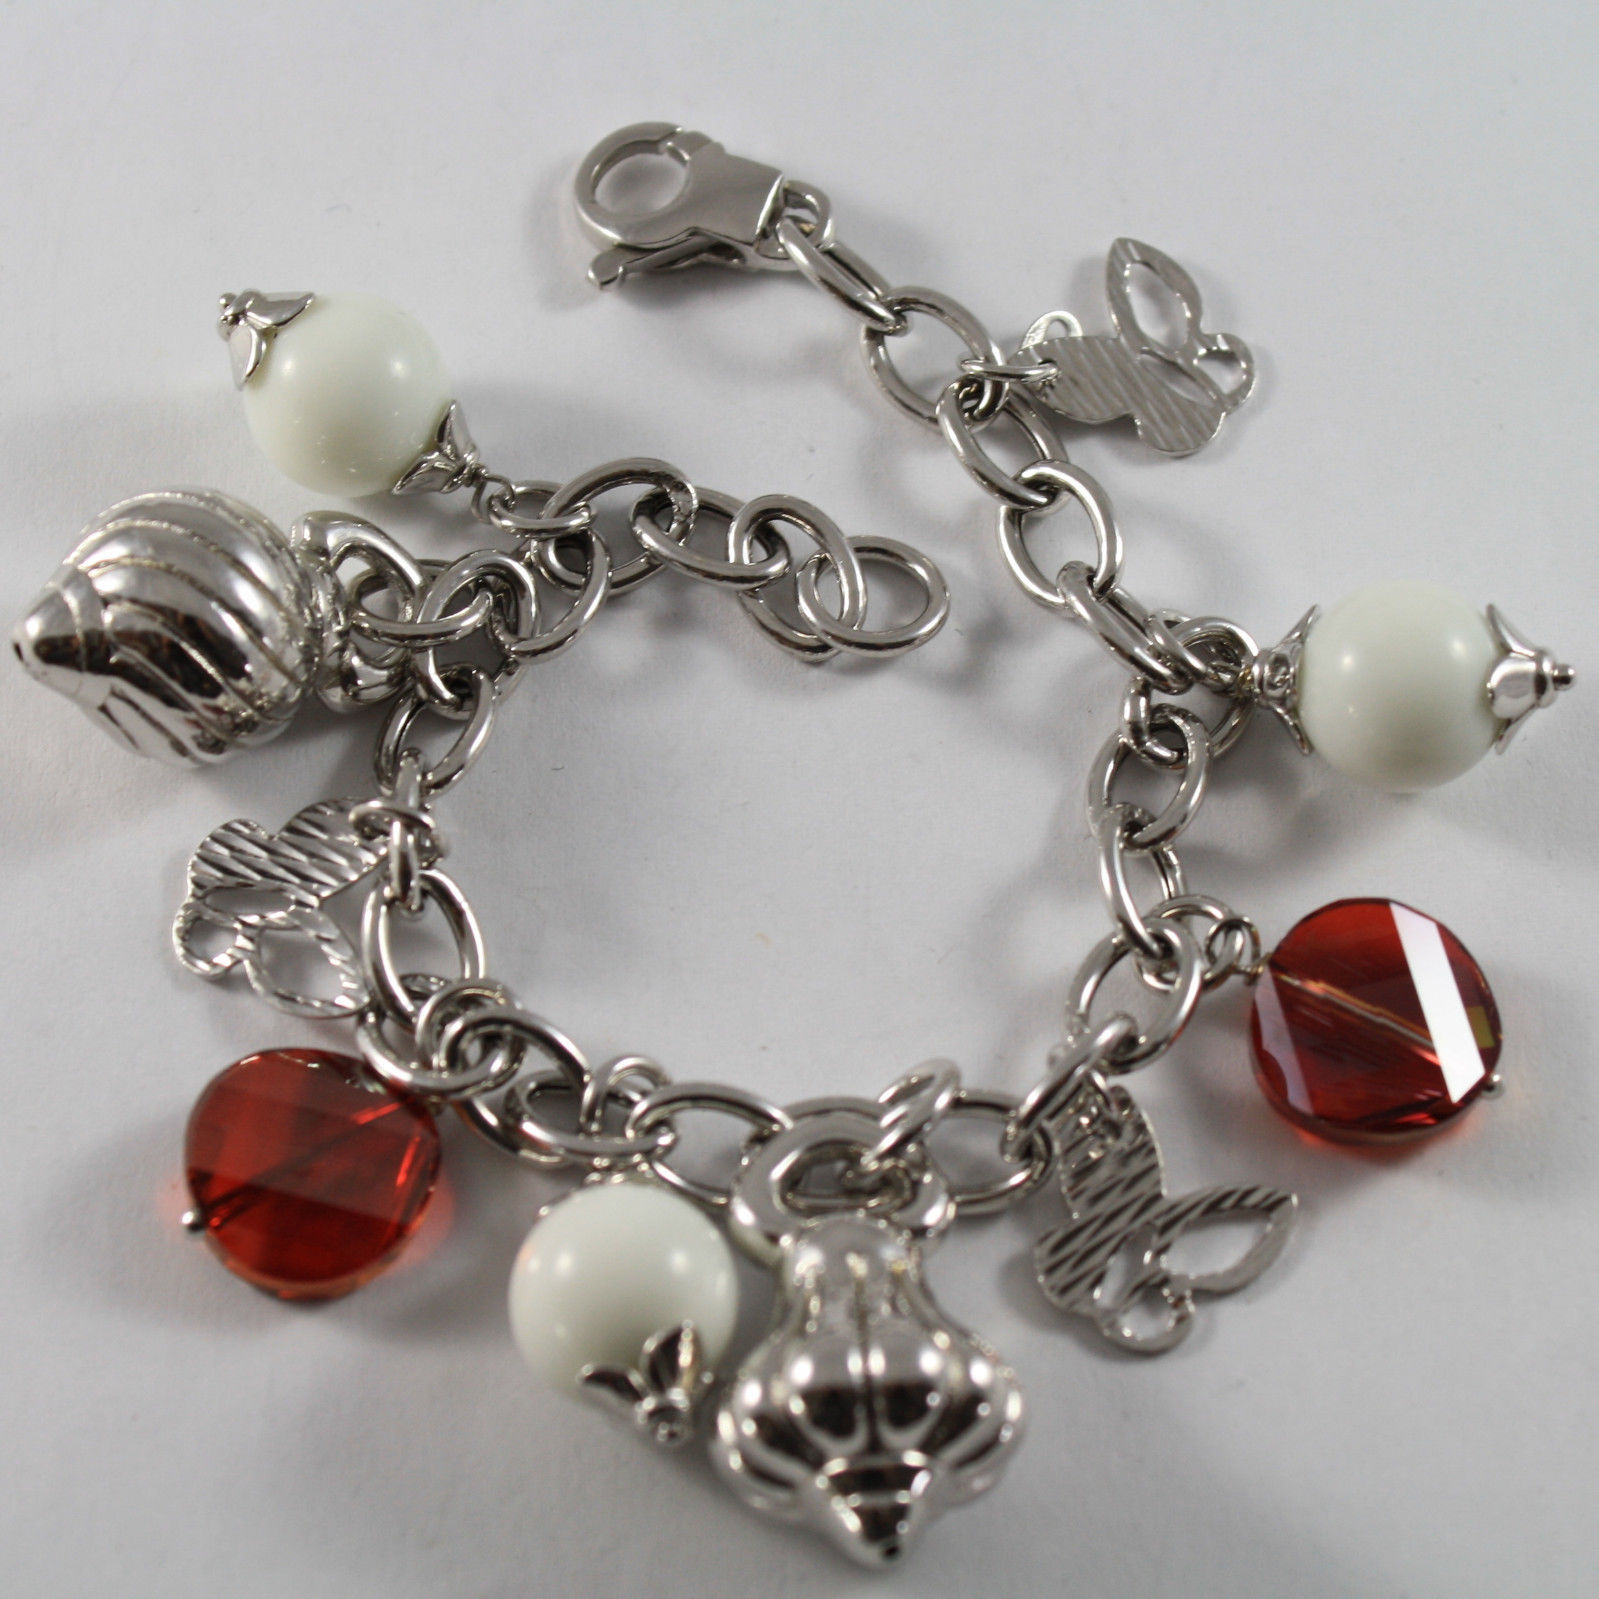 .925 RHODIUM SILVER BRACELET WITH ORANGE CRYSTAL, WHITE AGATE AND CHARMS